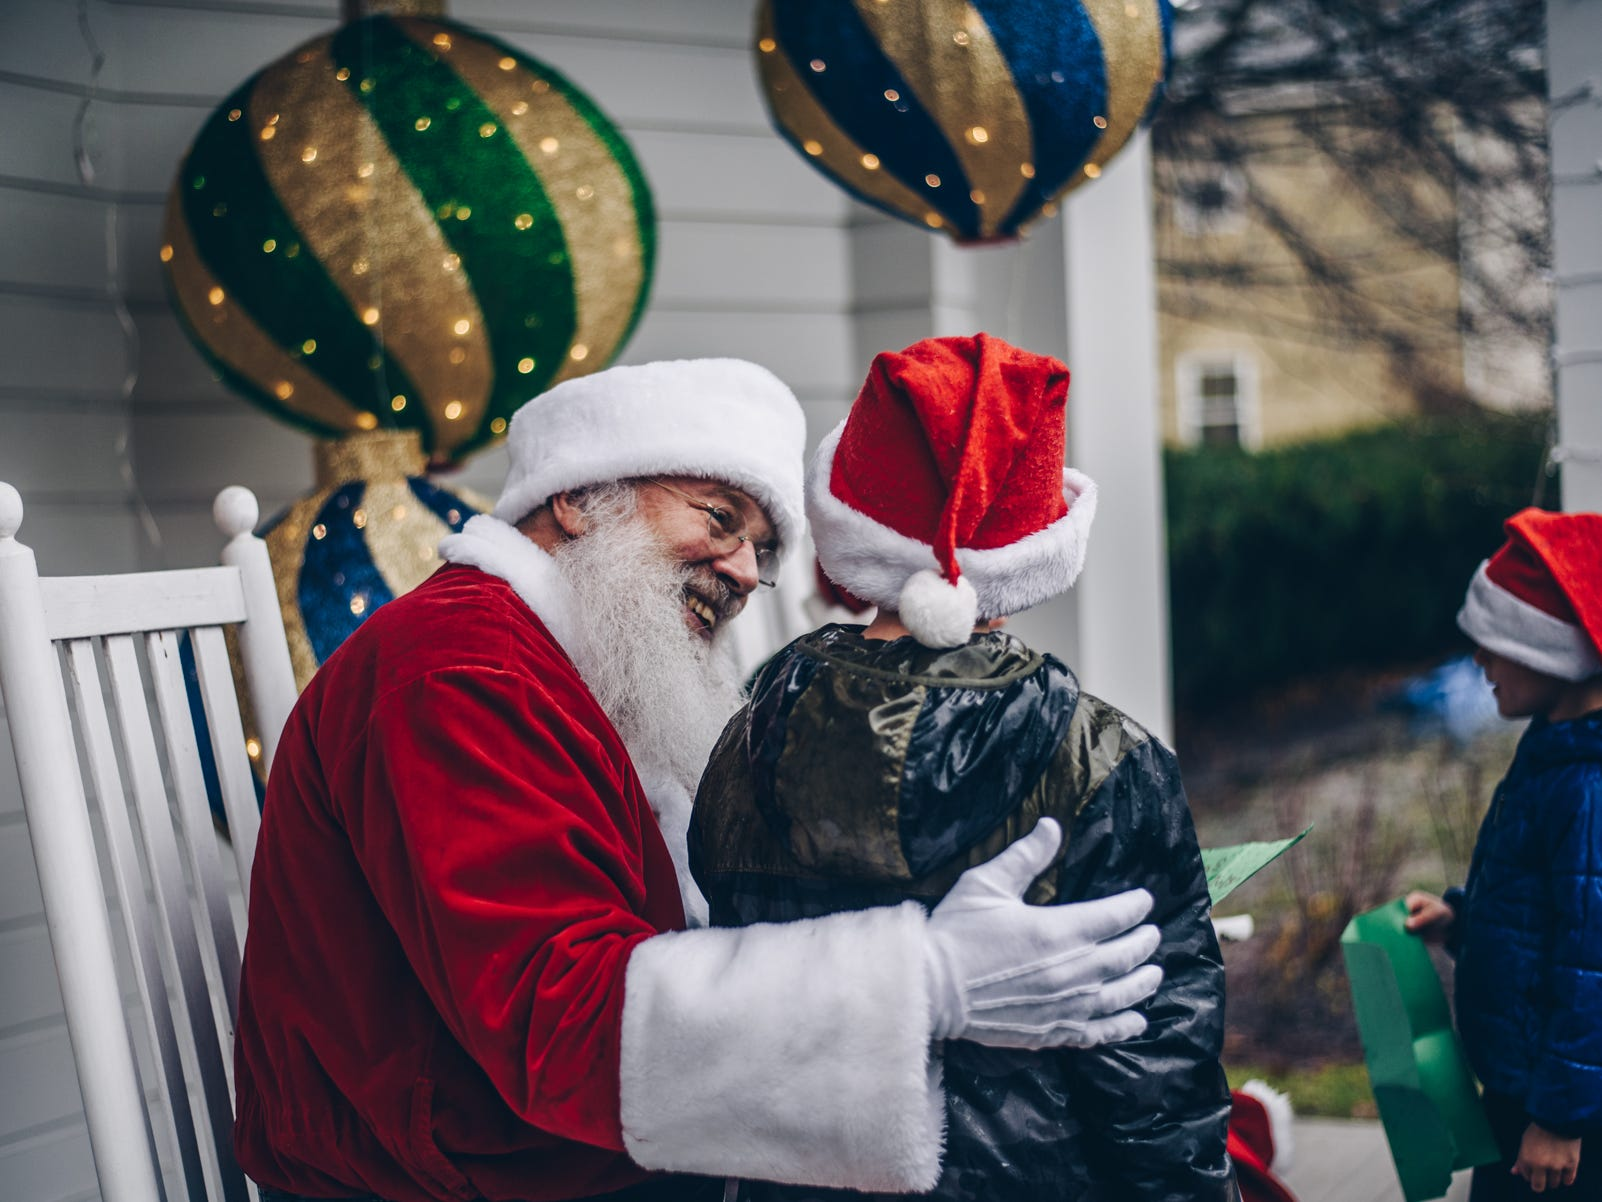 Santa and Mrs. Claus greeted young visitors and took Christmas wishes in the Knobel Folly behind Robbins Hunter Museum on Saturday.